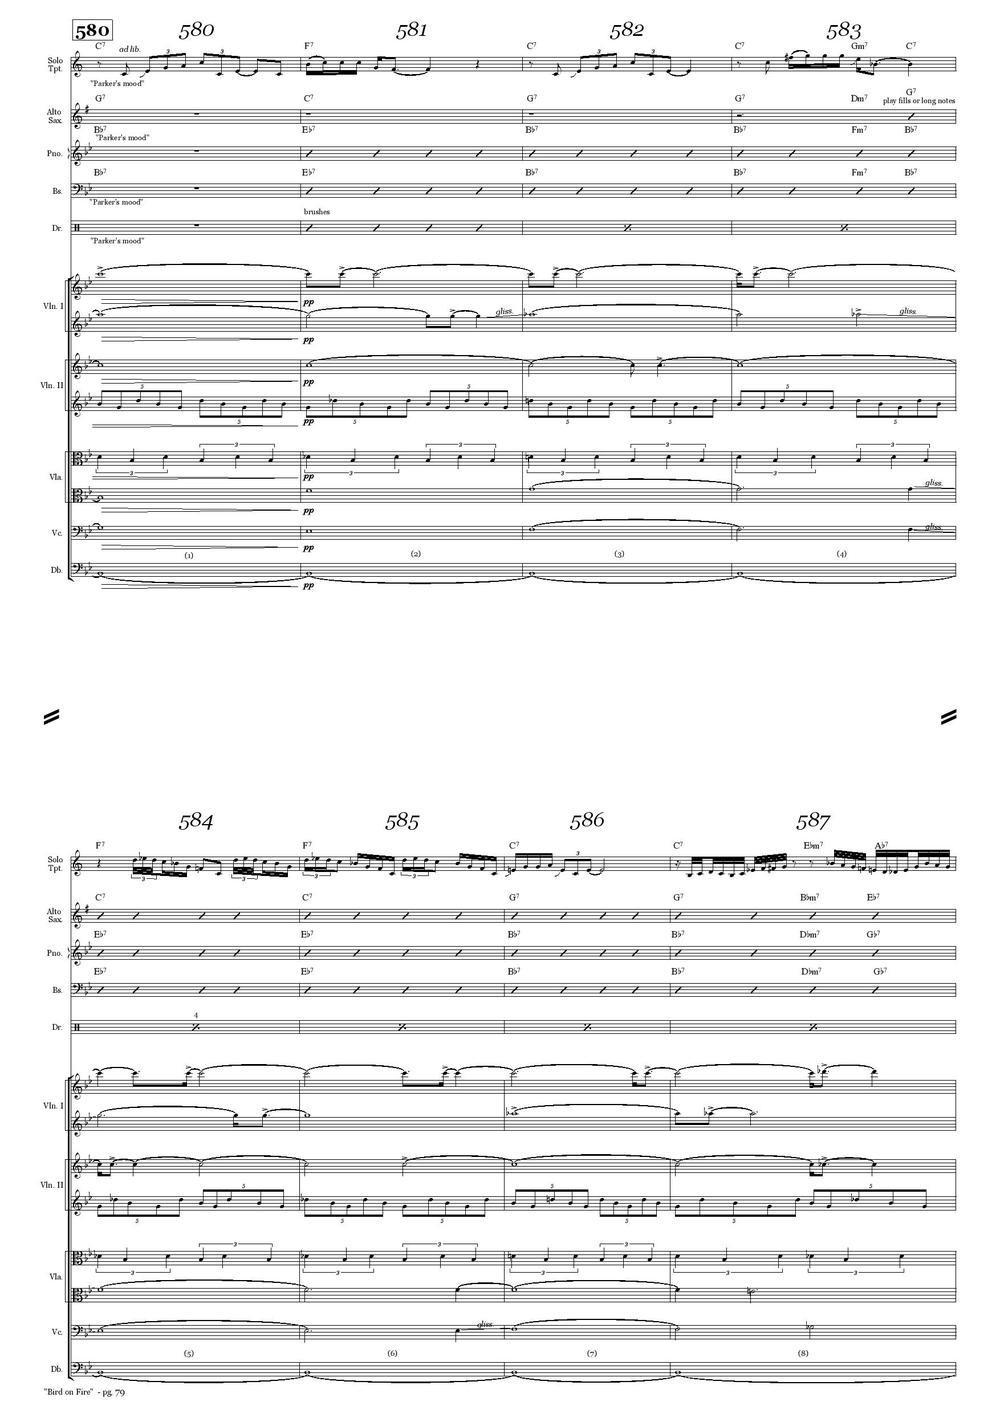 Bird on Fire - score-page-082.jpg